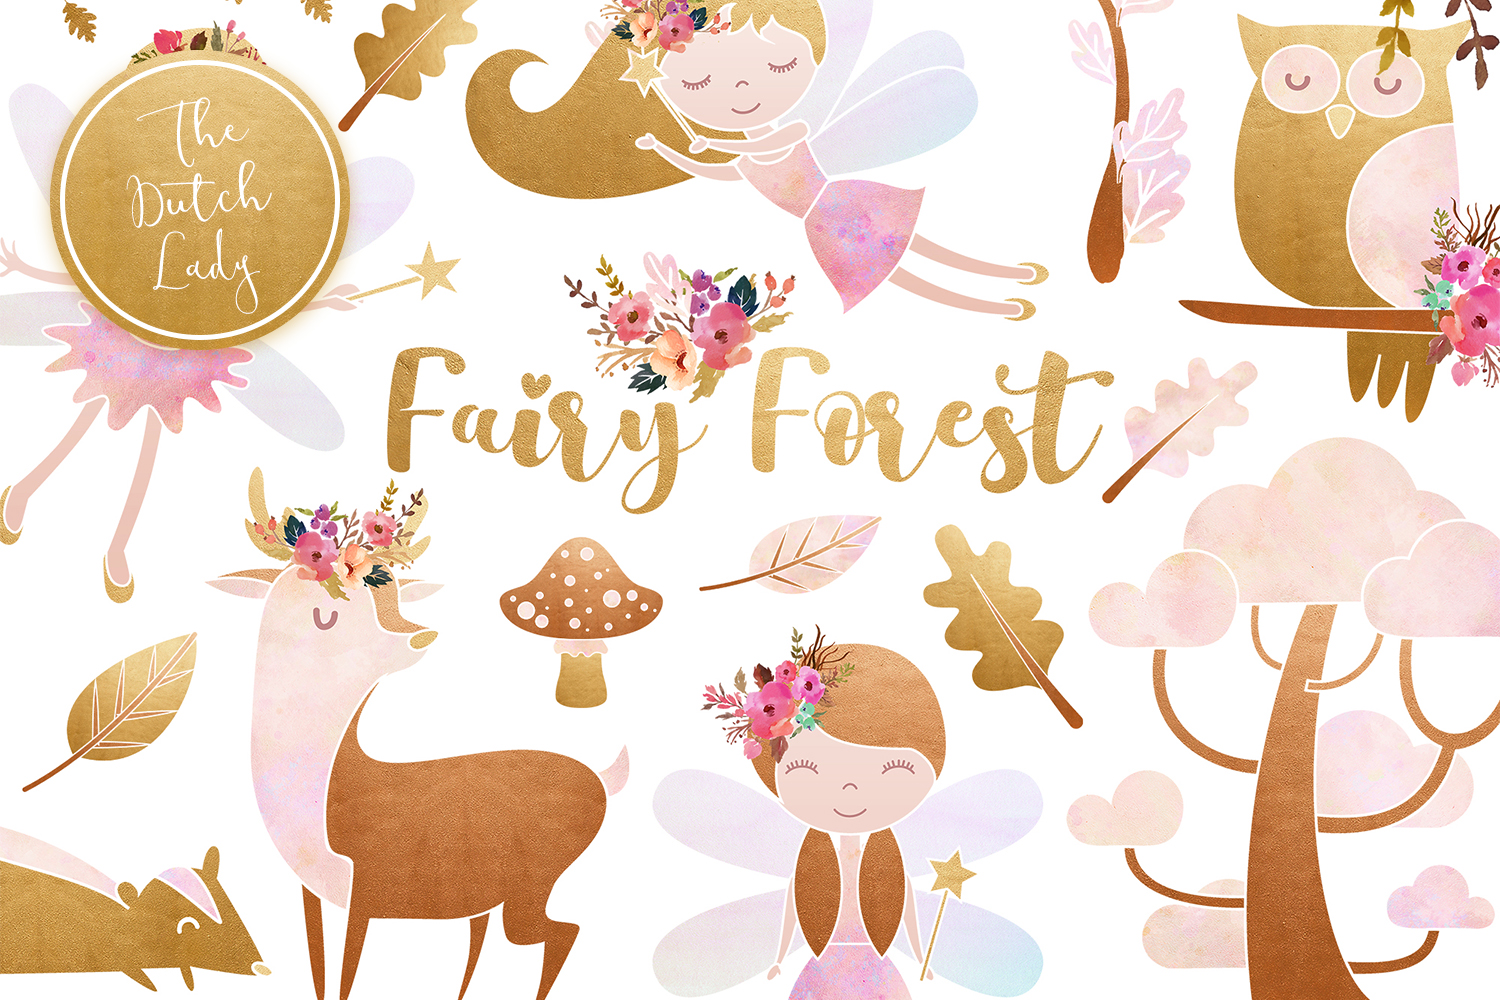 Enchanted clipart transparent library Enchanted Fairy Forest Clipart Set - Vsual transparent library